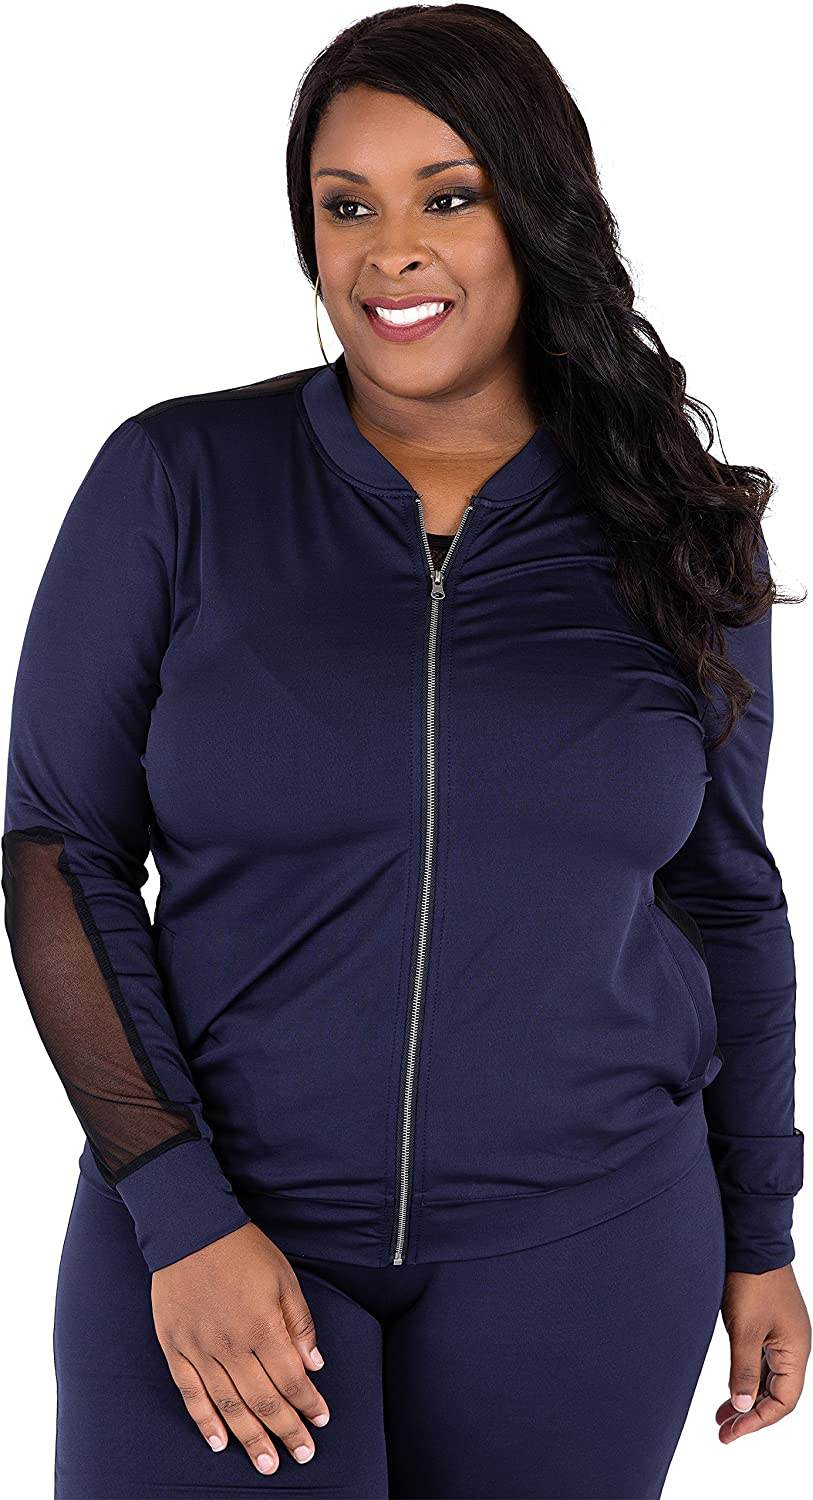 Poetic Justice Plus Size Curvy Women S Navy Zip Up Activewear Tracksuit Jacket At Amazon Women S Clothing Store